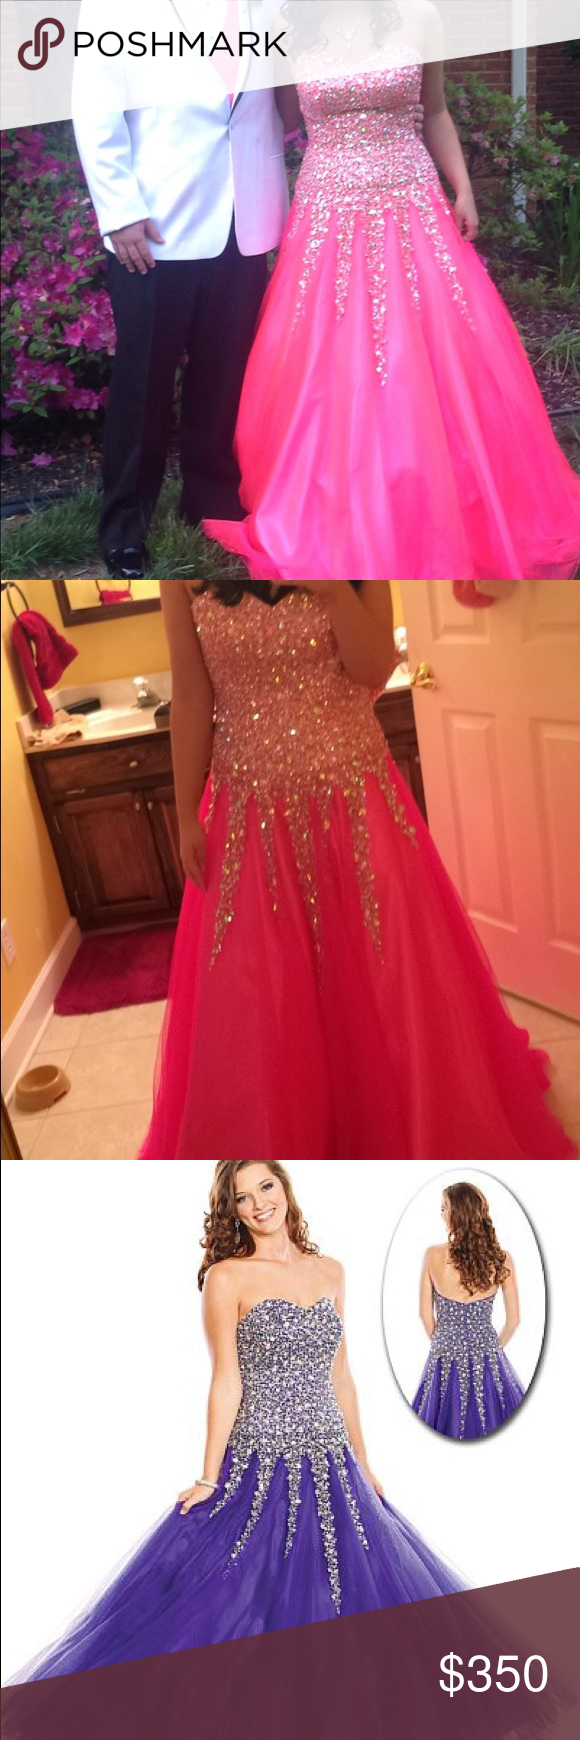 Prom dress with matching necklace earrings worn only for How to match jewelry with prom dress